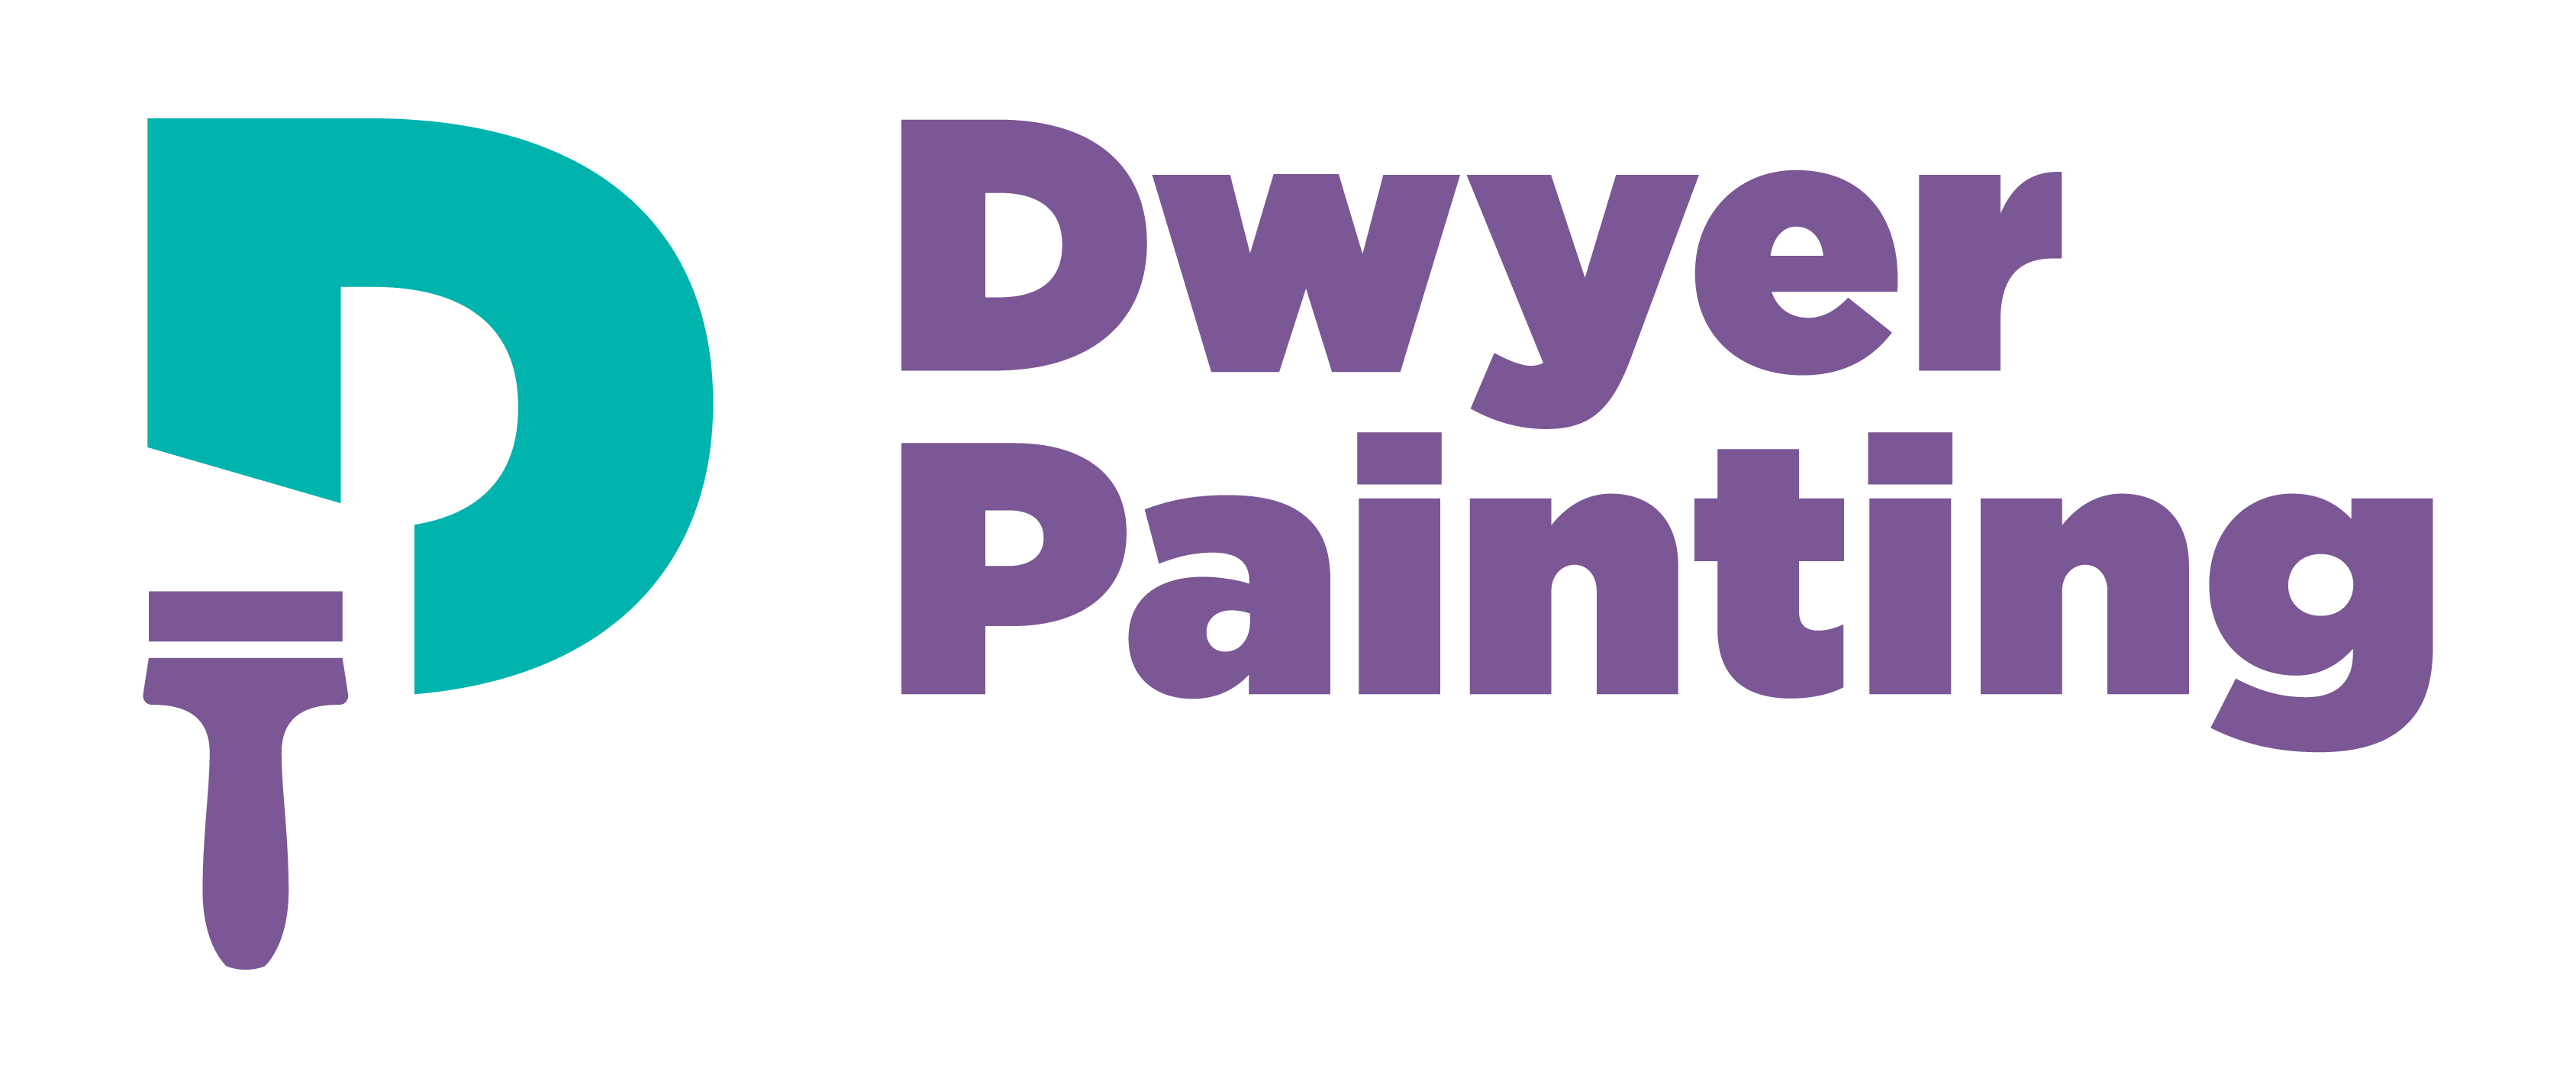 Dwyer Painting